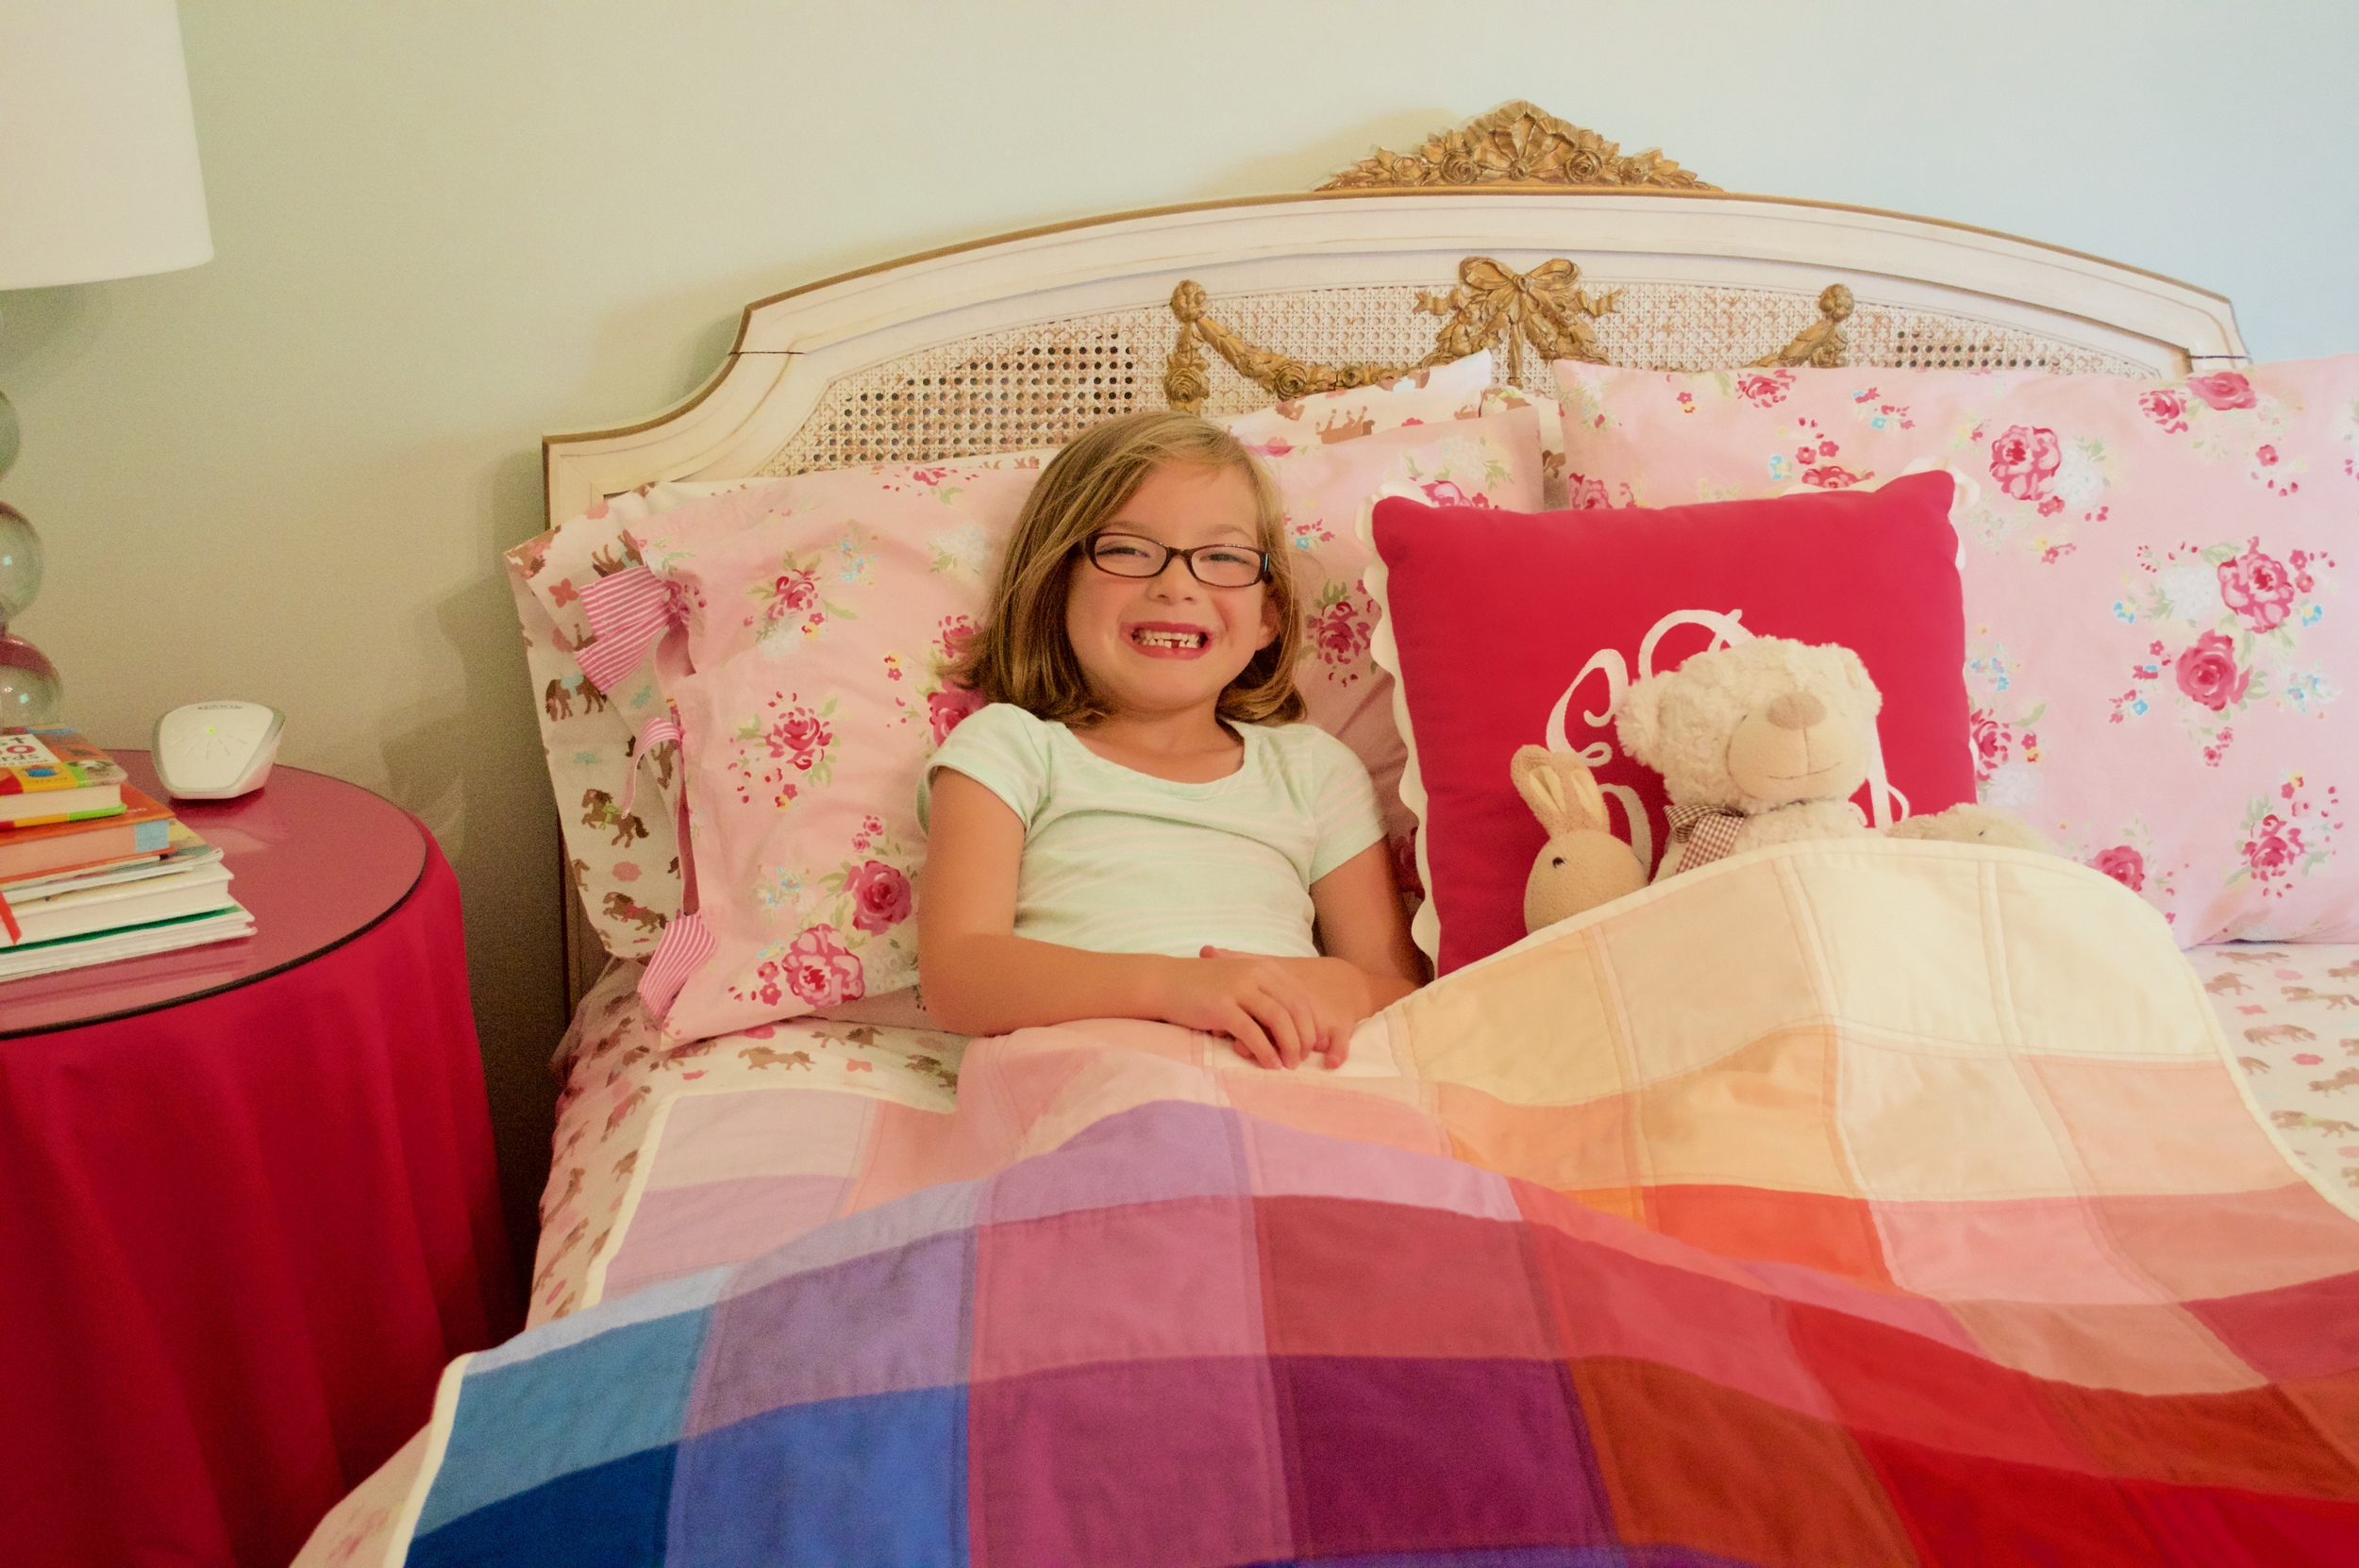 Their big sister thought the pink quilt looked perfect in her room and I agree! Love that she tucked her animals under the quilt too!